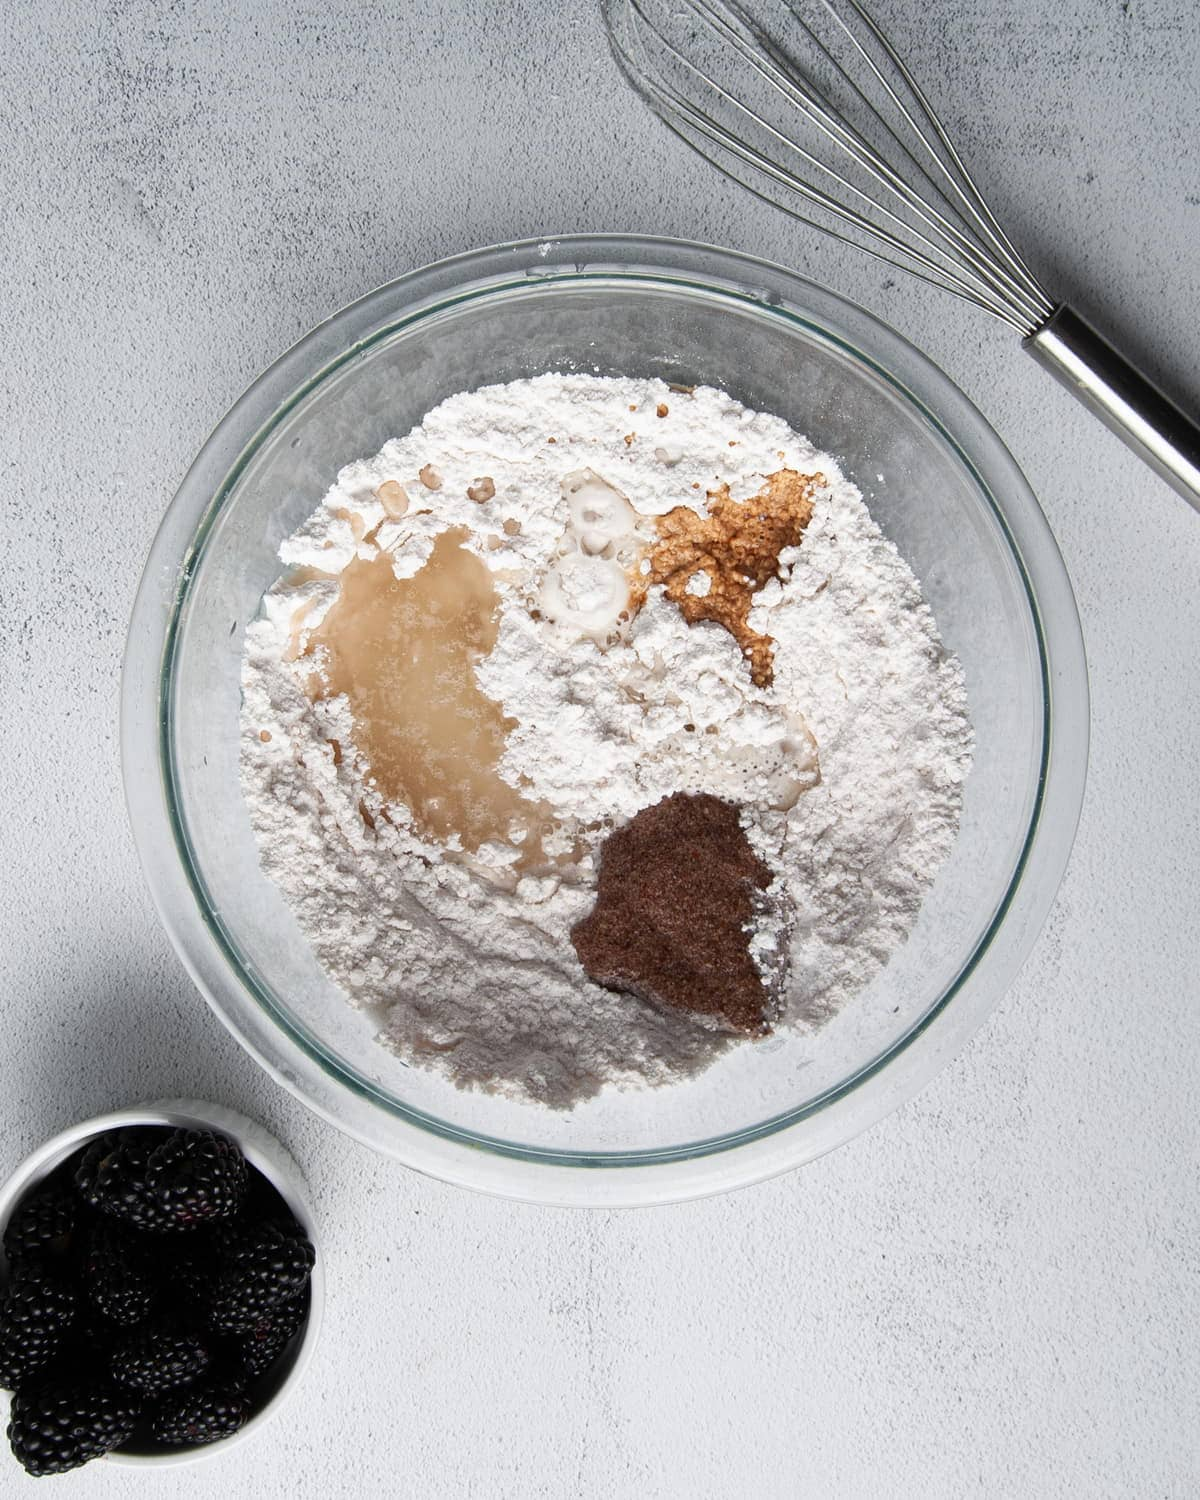 adding non-dairy milk, flac egg, vanilla extract, and oil to muffin batter